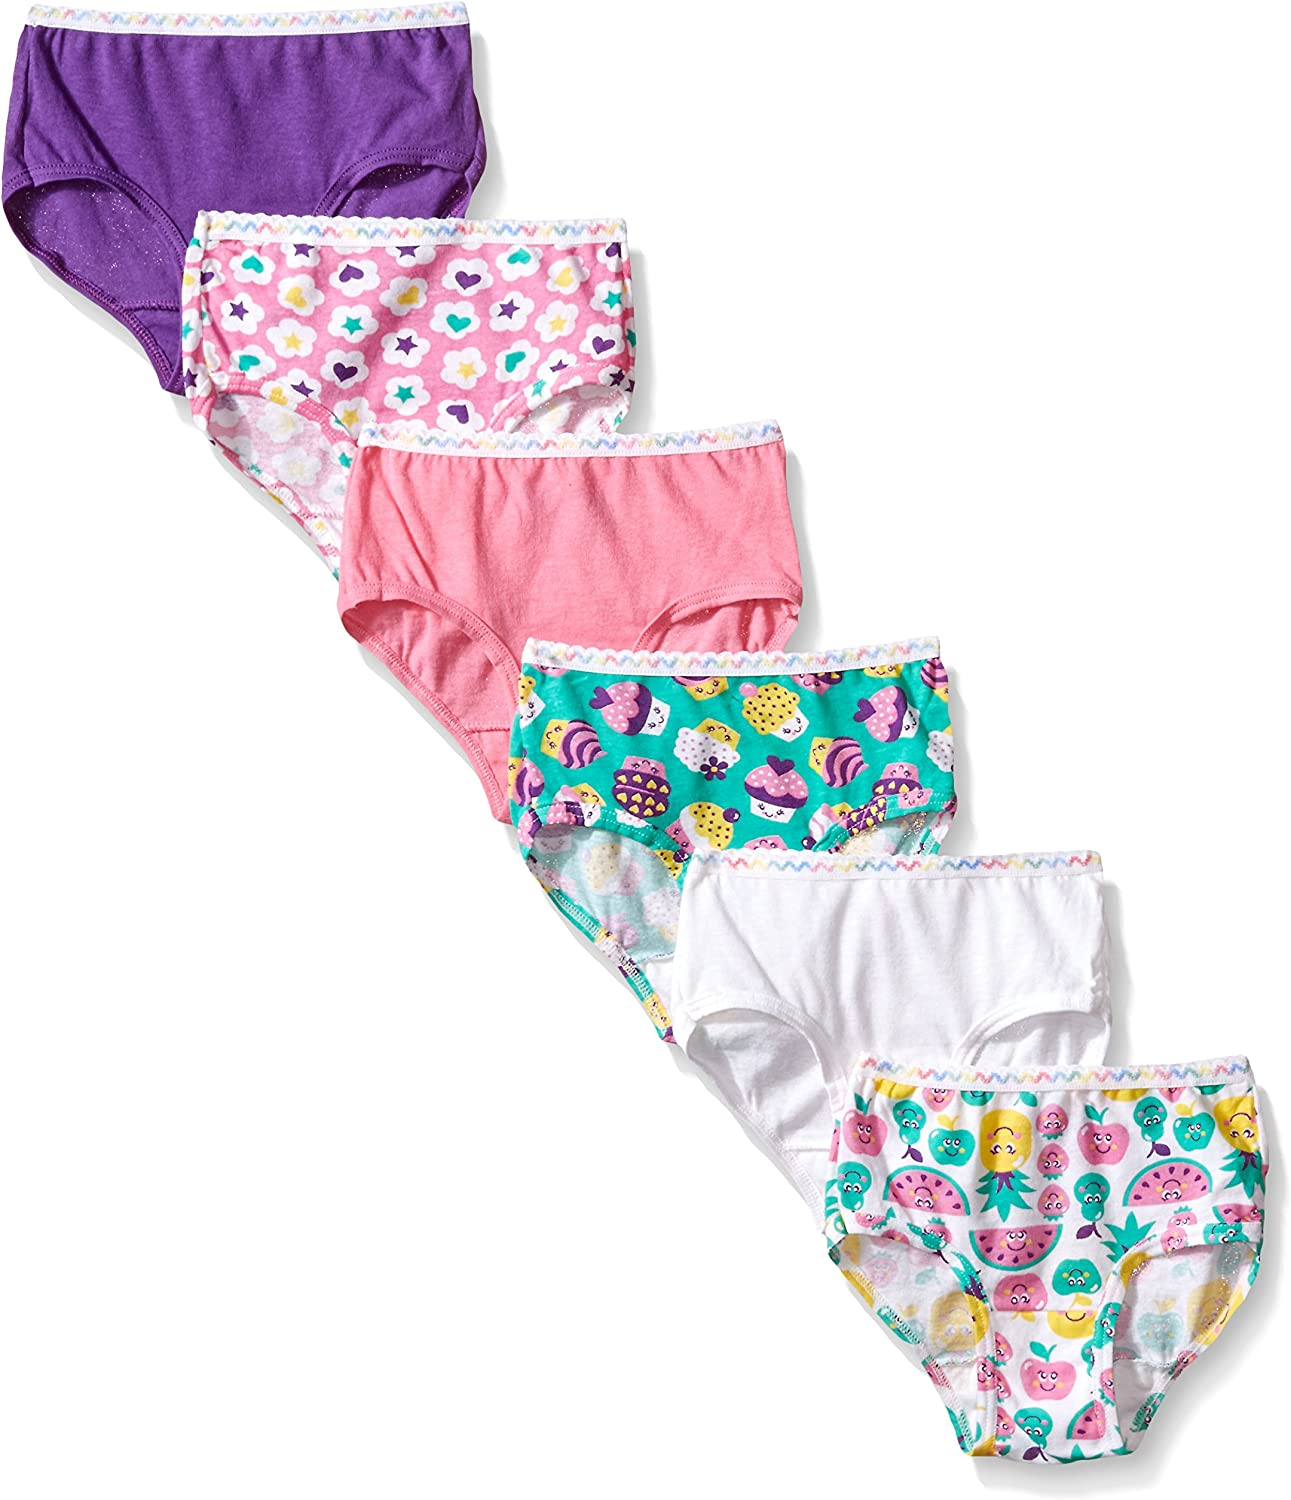 Fruit of the Loom Toddler Girls 6-Pair Hipsters Multi-Color Underwear Size 2T//3T